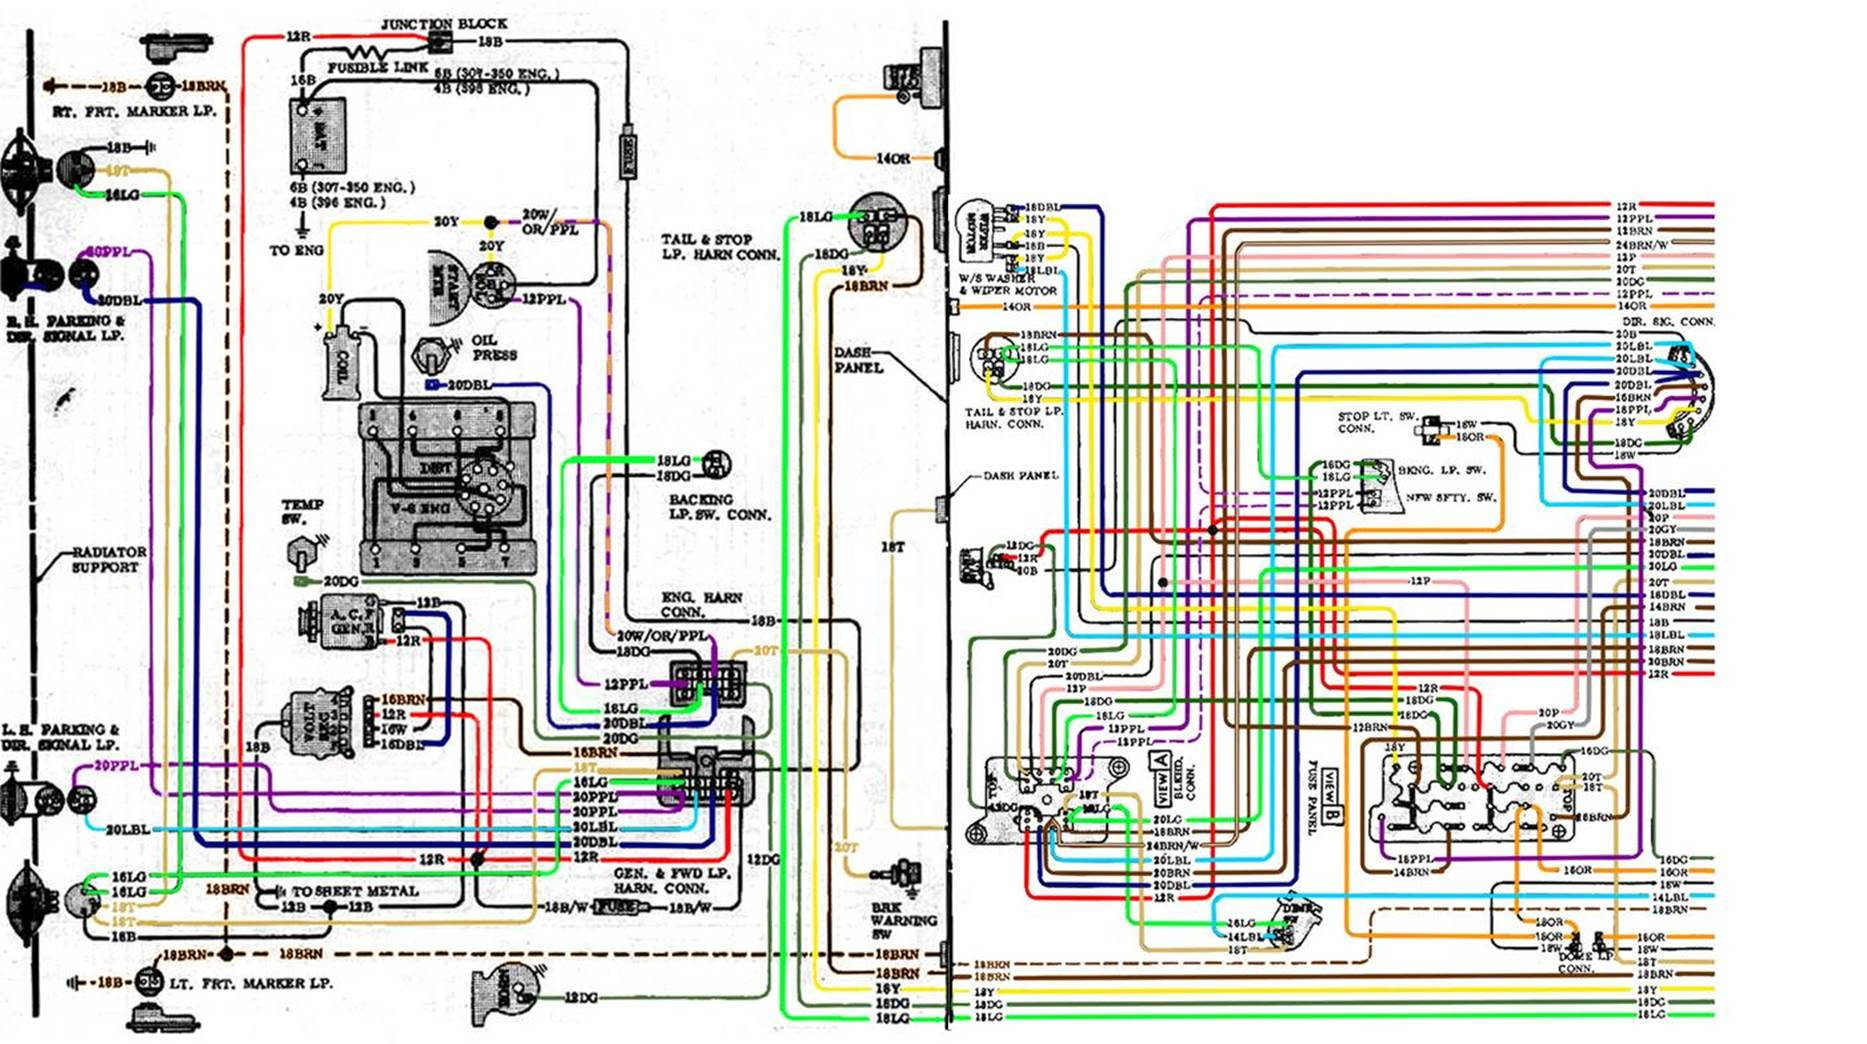 image002 67 72 chevy wiring diagram 1971 chevy nova wiring harness at gsmportal.co